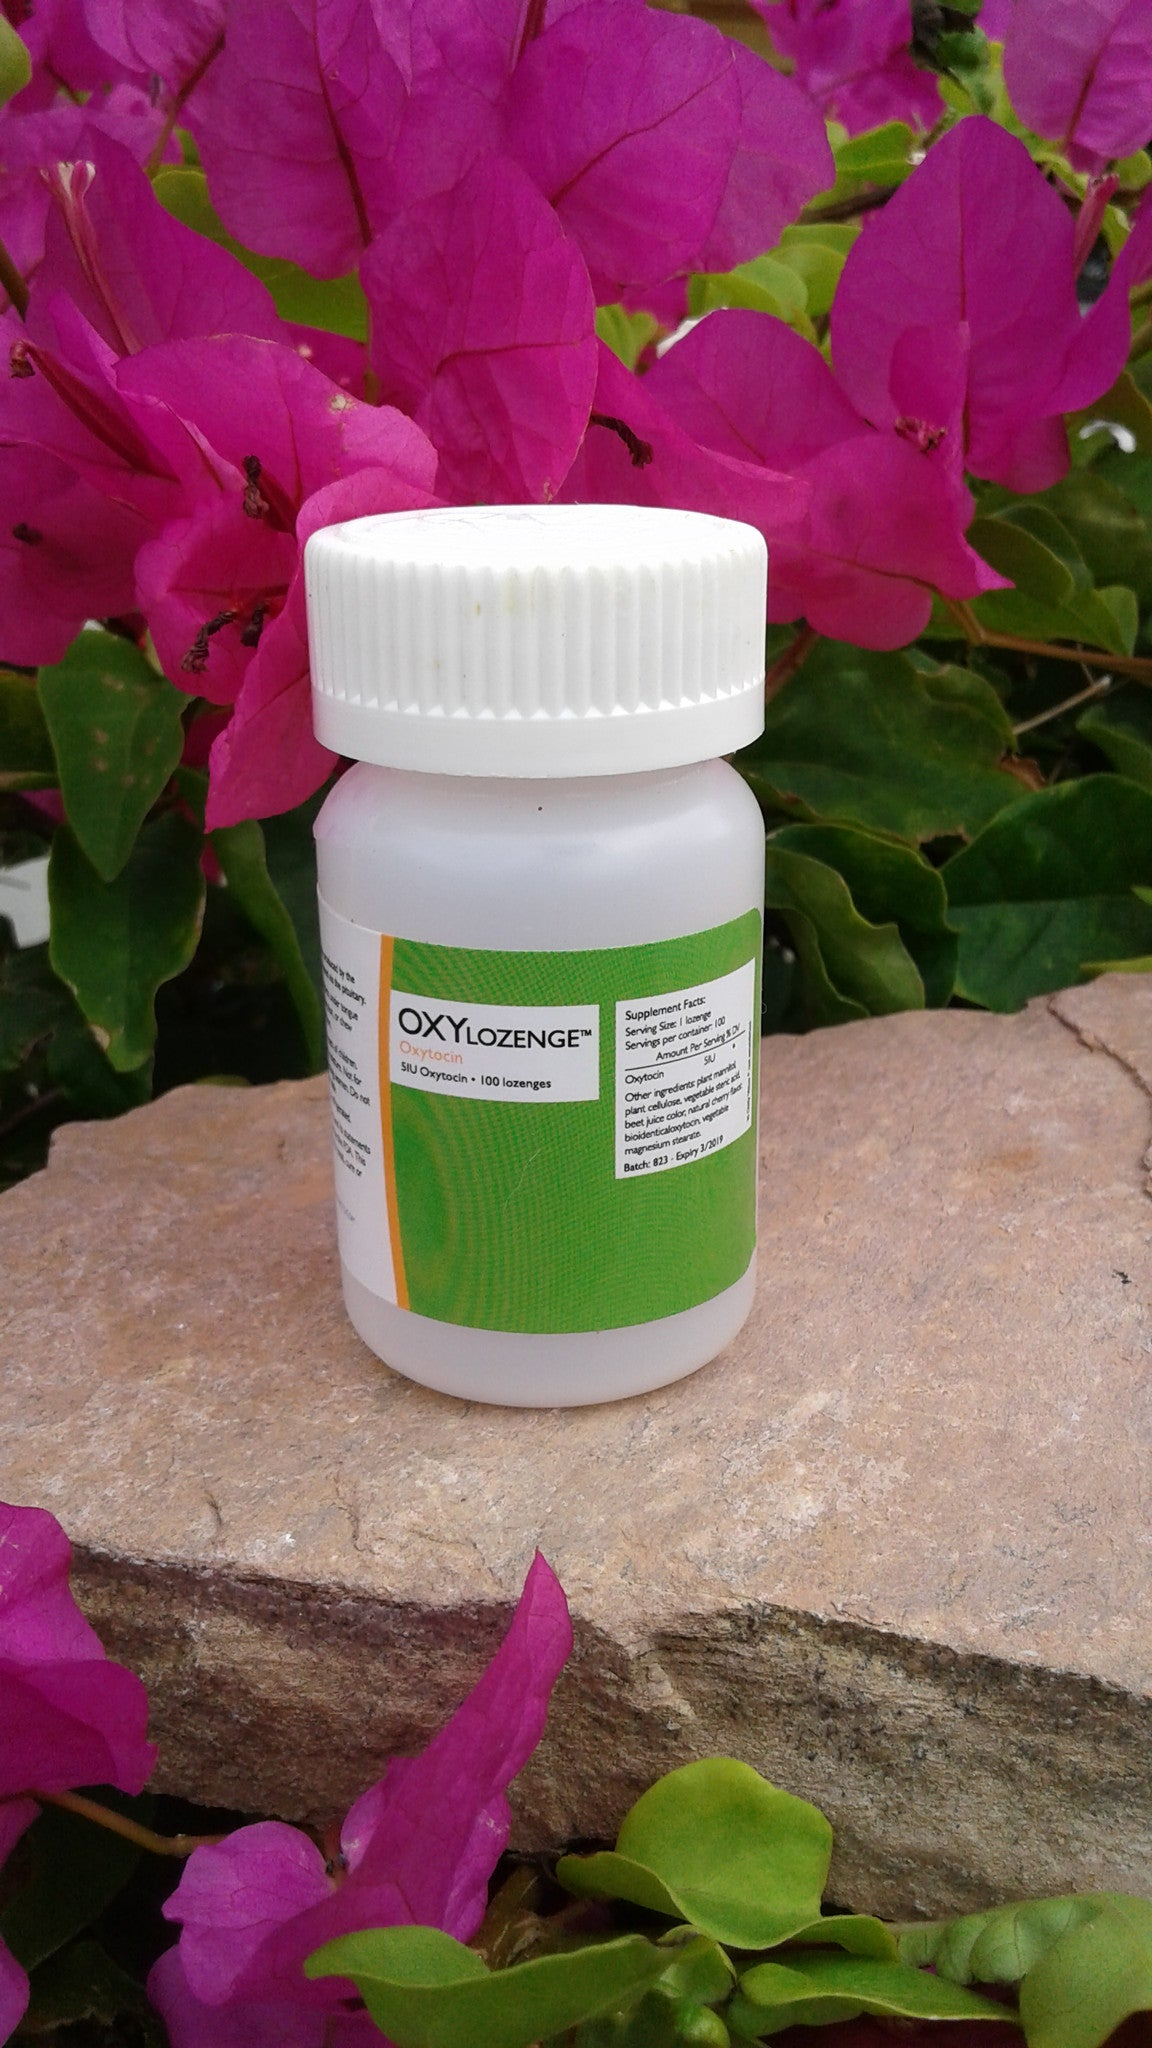 OxyLozenge, the Bonding & Love Amino Acid in a Tablet, Wholesale Price: $50 per bottle with a 5 bottle minimum order